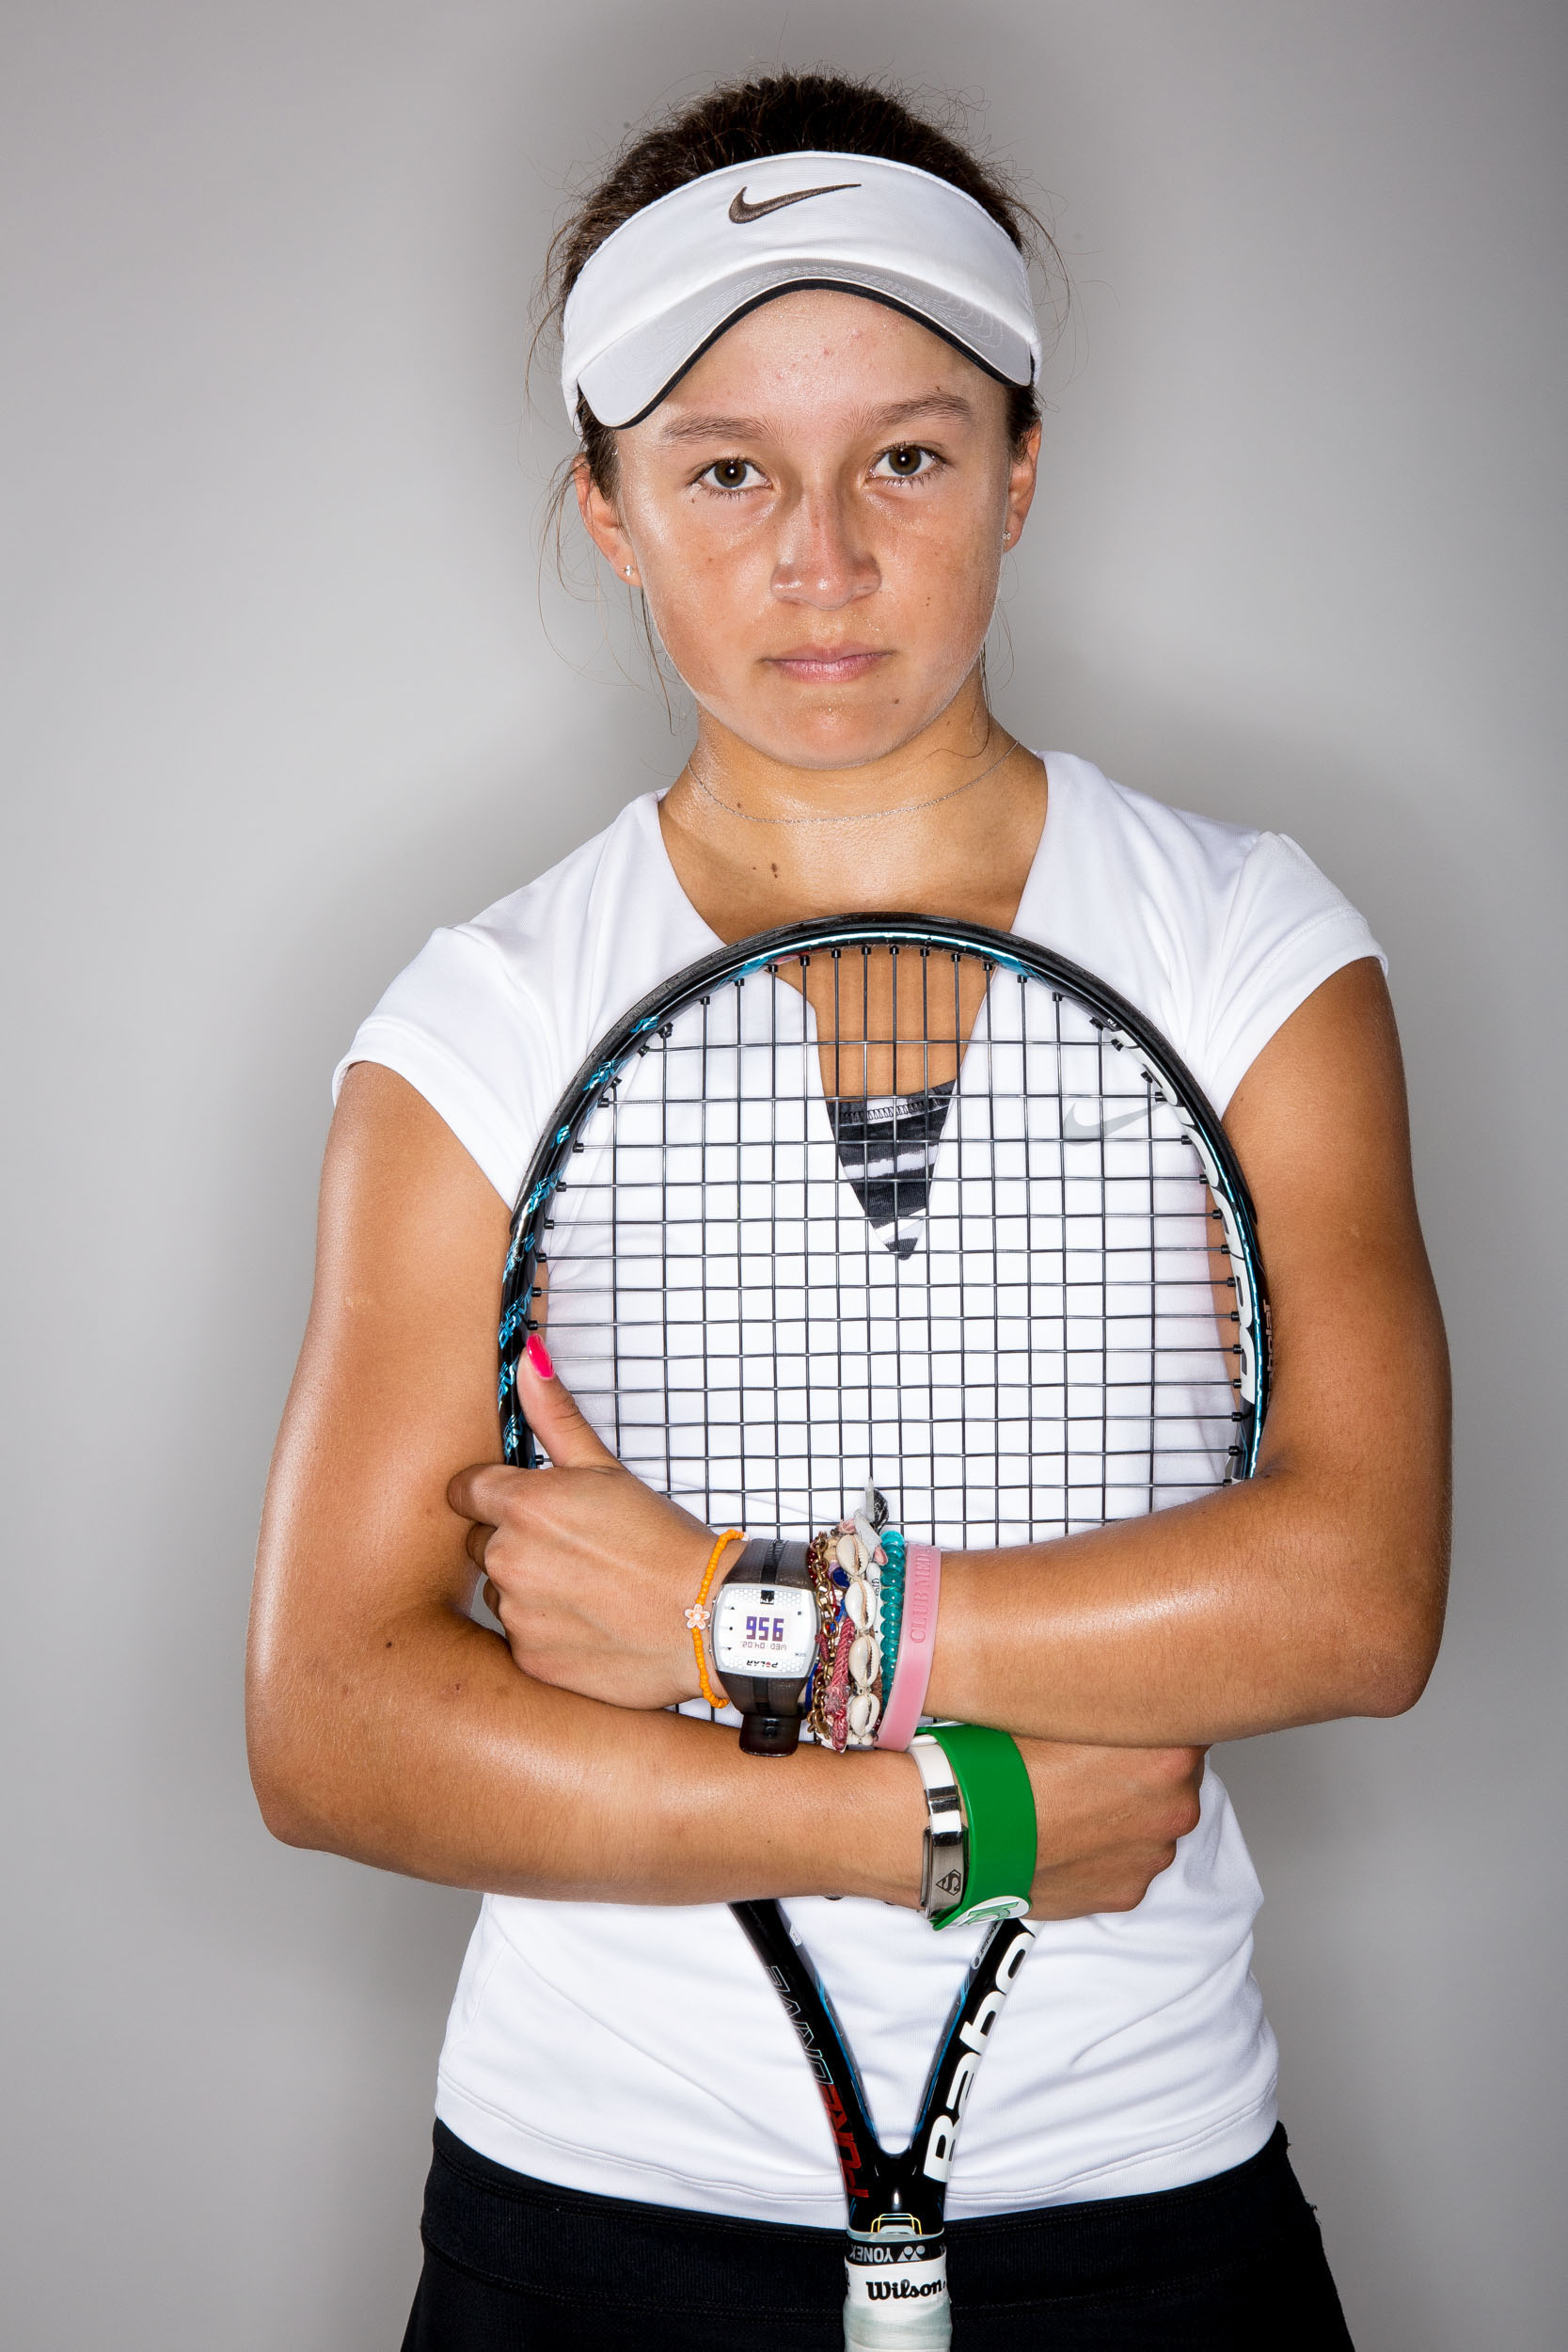 Florida Photography | teenage tennis player | Steven Martine